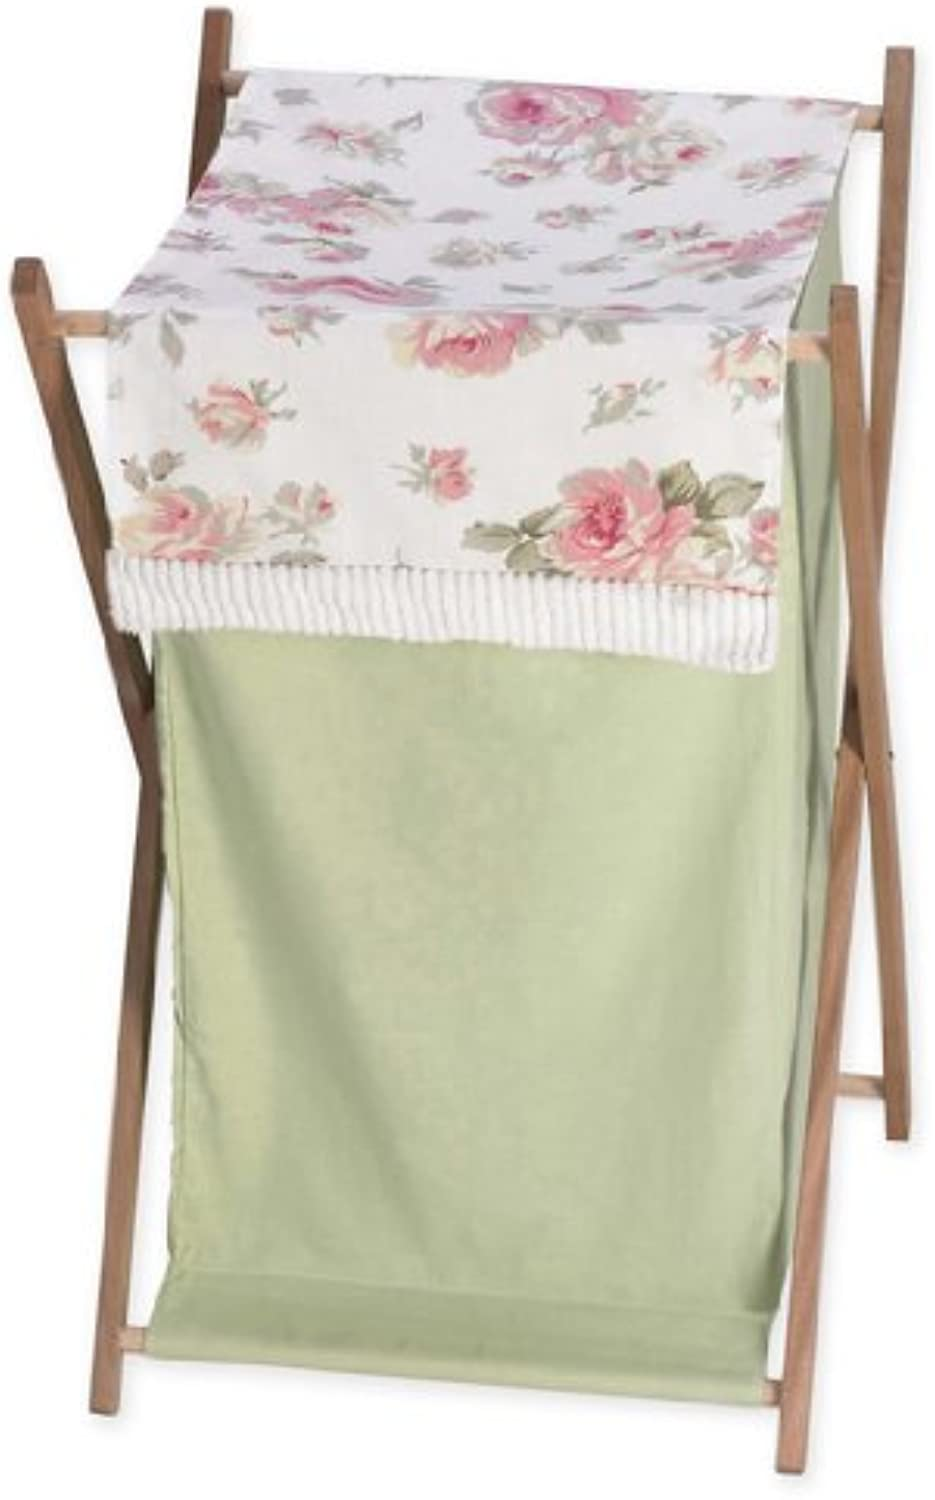 Baby and Kids Clothes Laundry Hamper for Sweet Jojo Designs for Riley's pinks Bedding